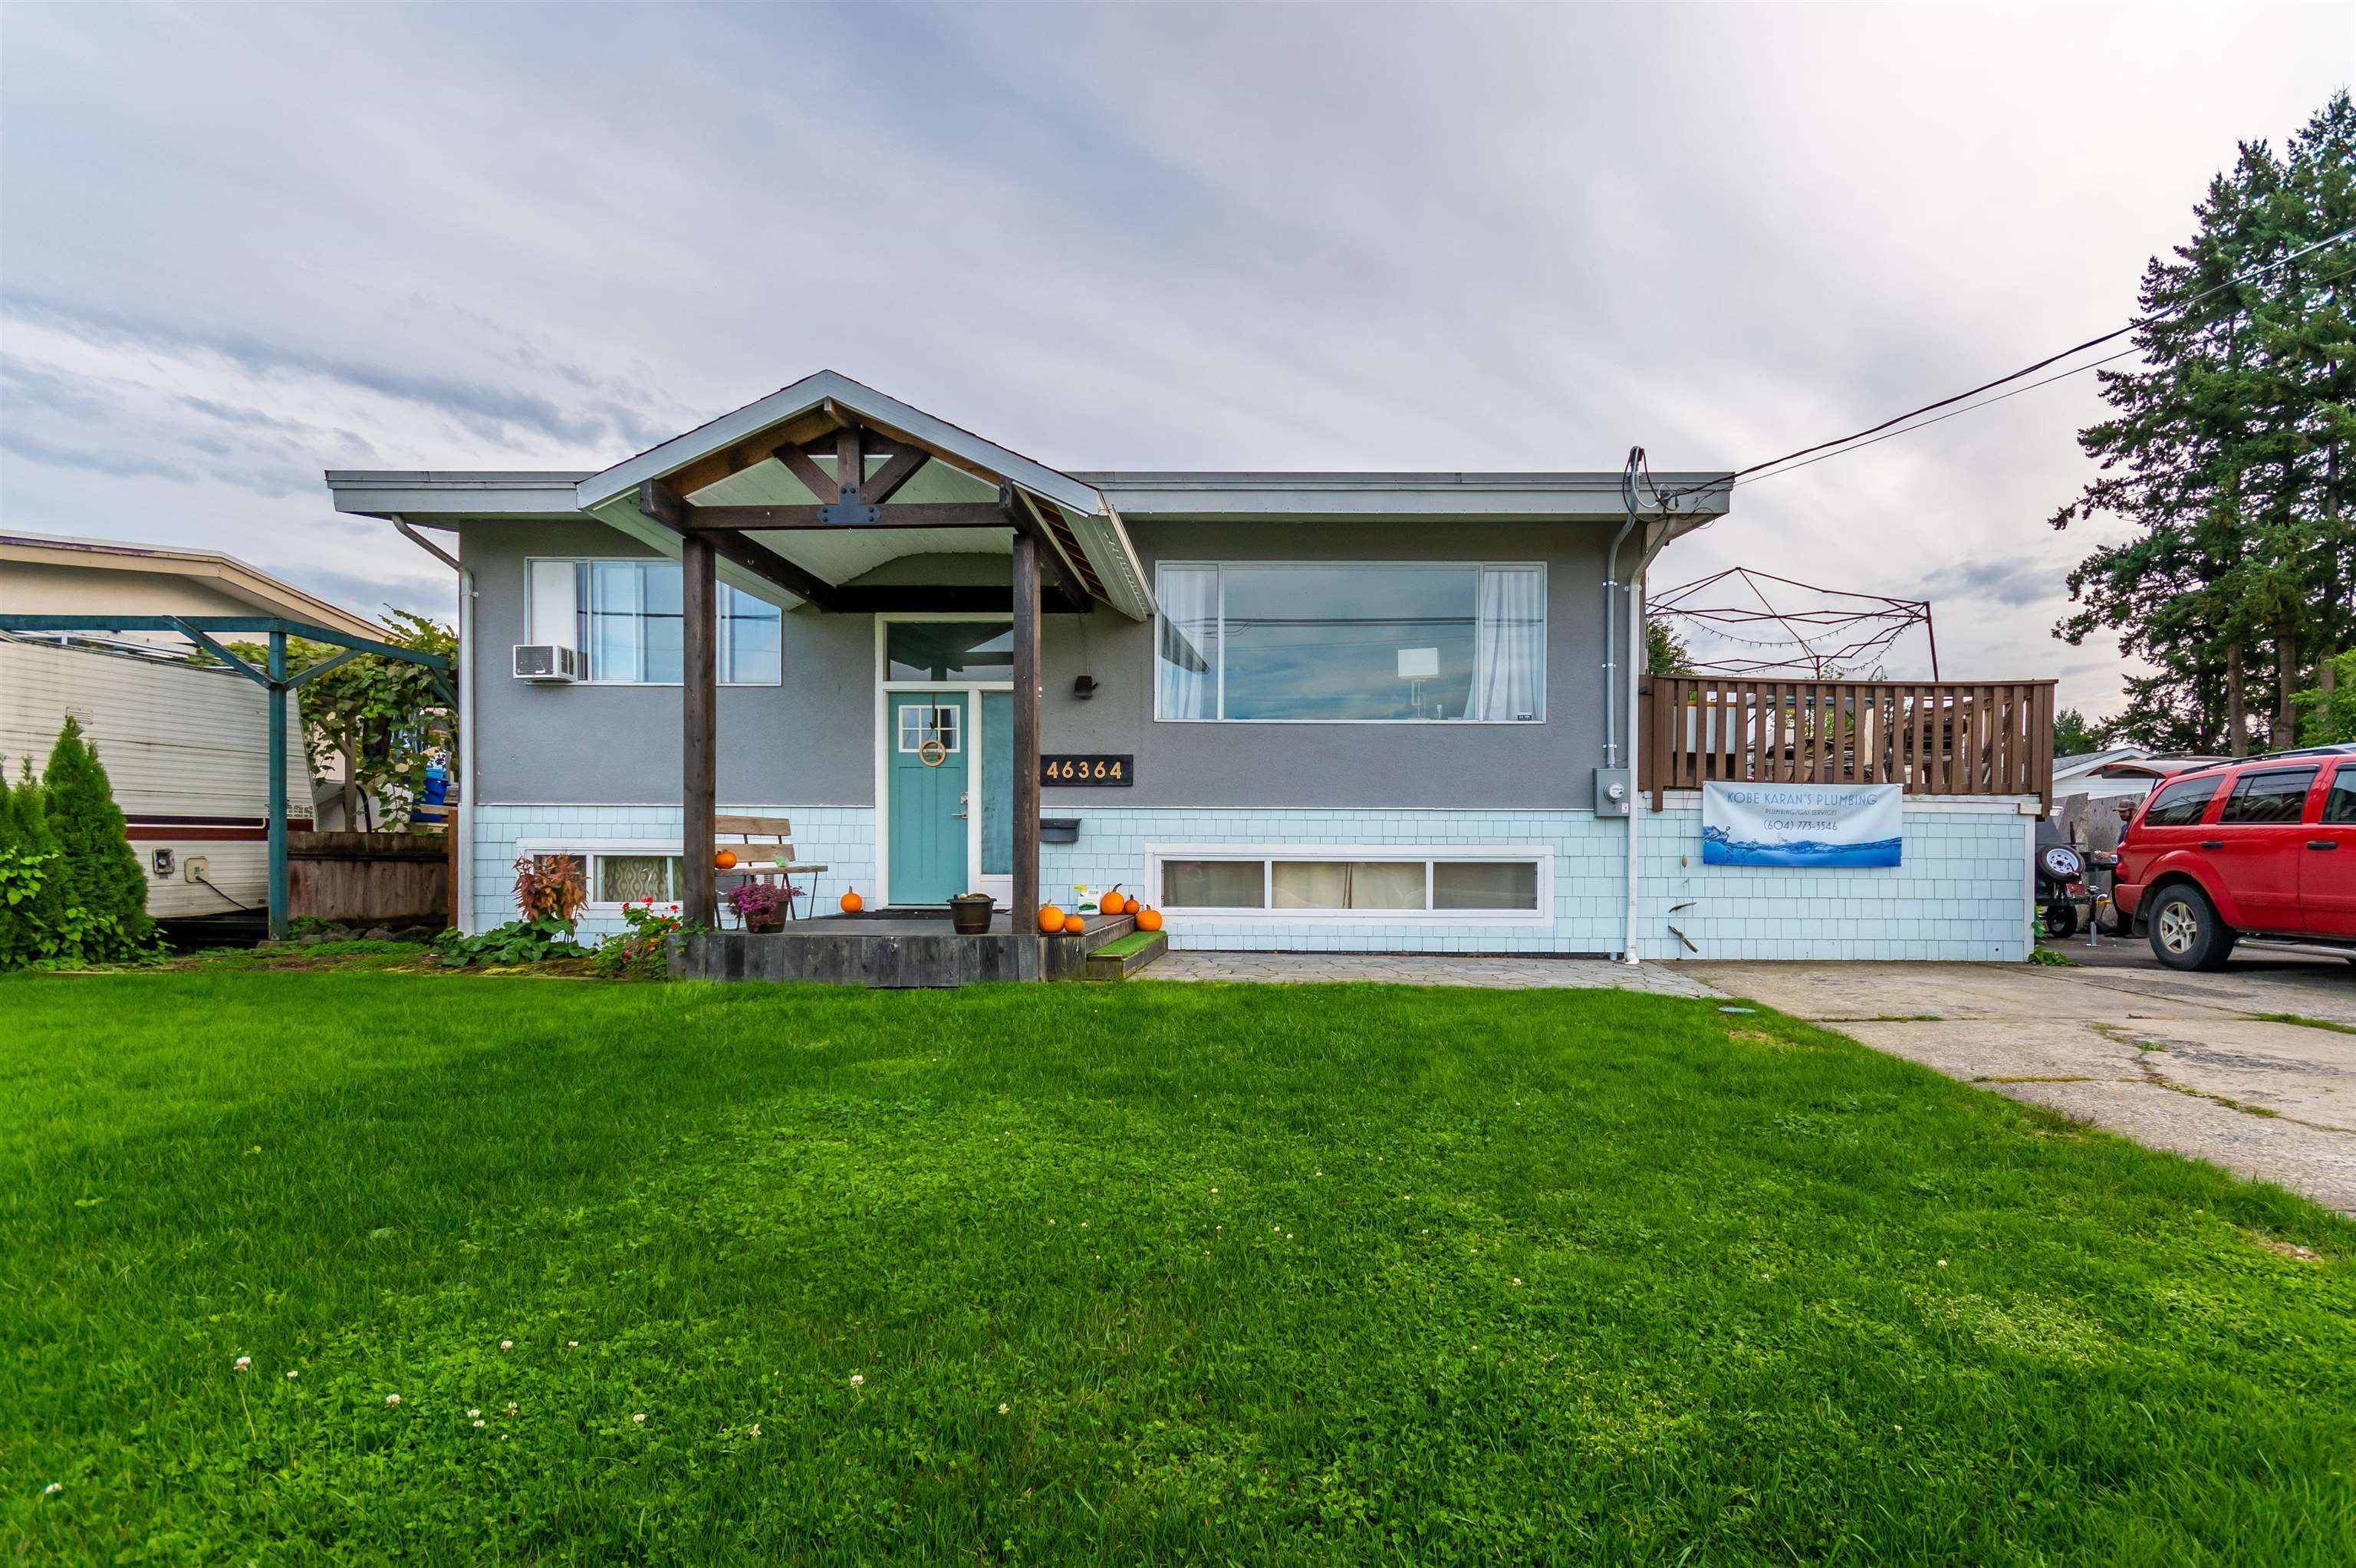 Main Photo: 46364 STRATHCONA Road in Chilliwack: Fairfield Island House for sale : MLS®# R2623056